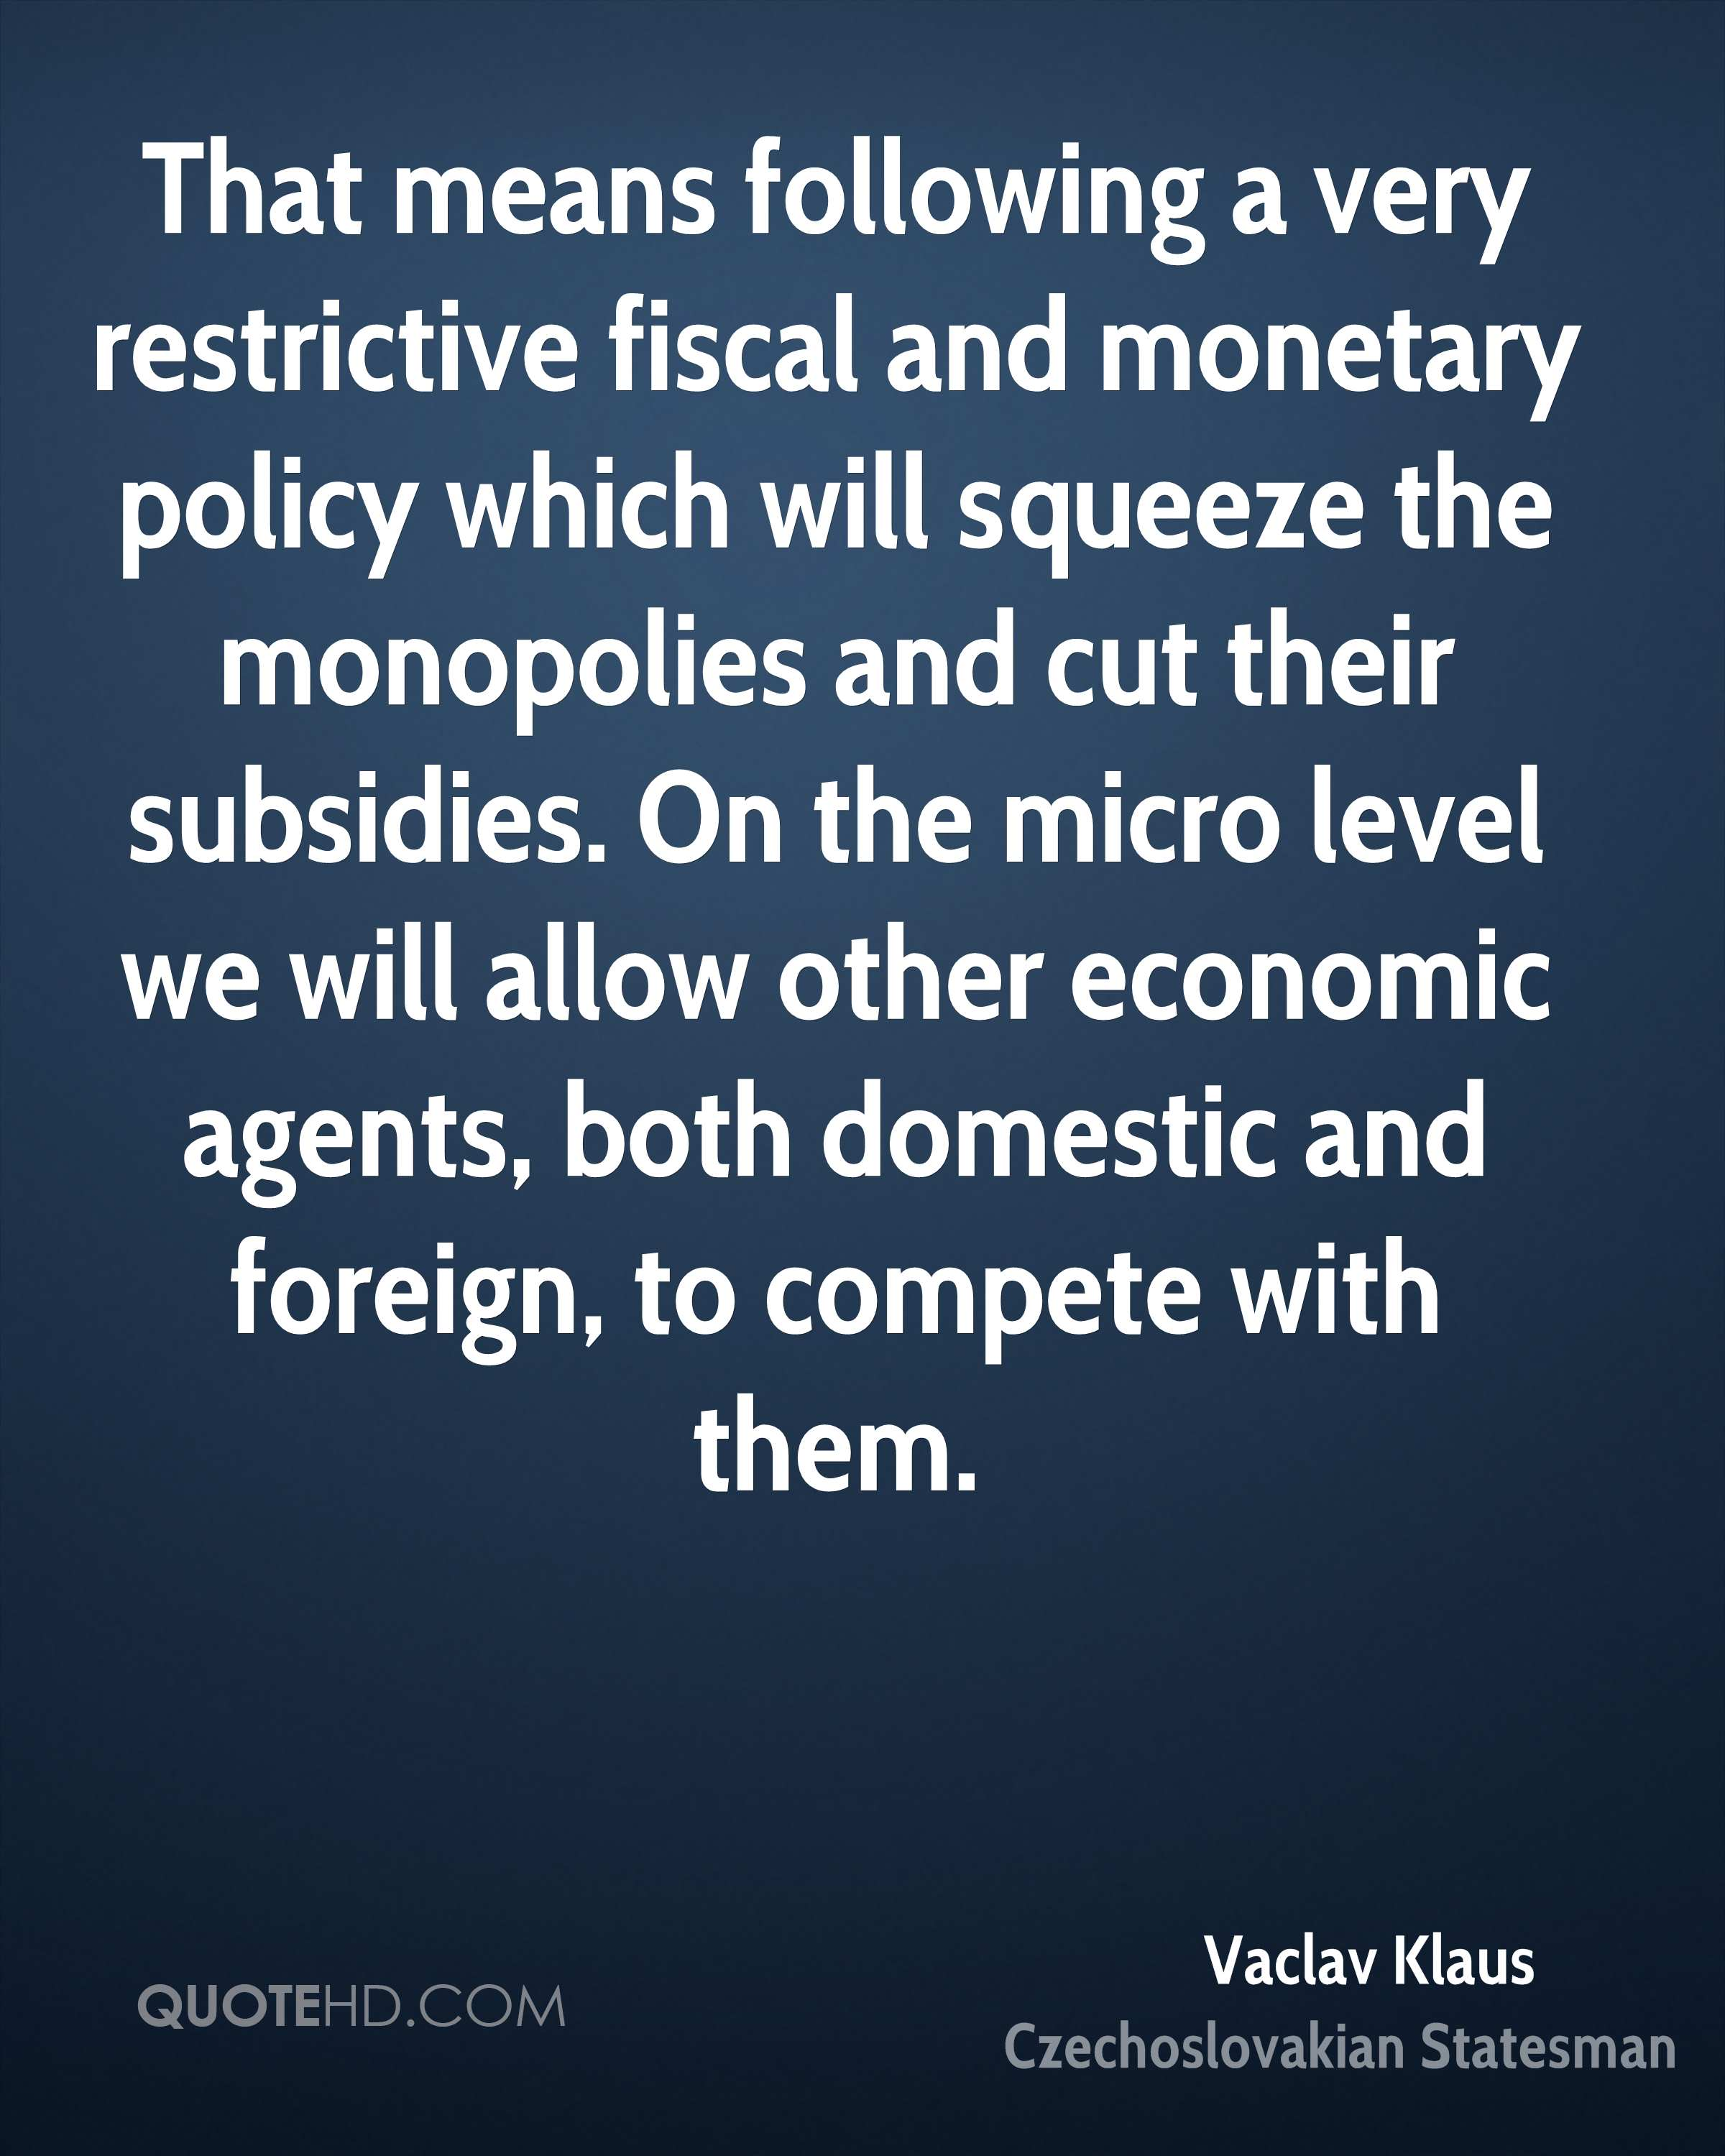 That means following a very restrictive fiscal and monetary policy which will squeeze the monopolies and cut their subsidies. On the micro level we will allow other economic agents, both domestic and foreign, to compete with them.